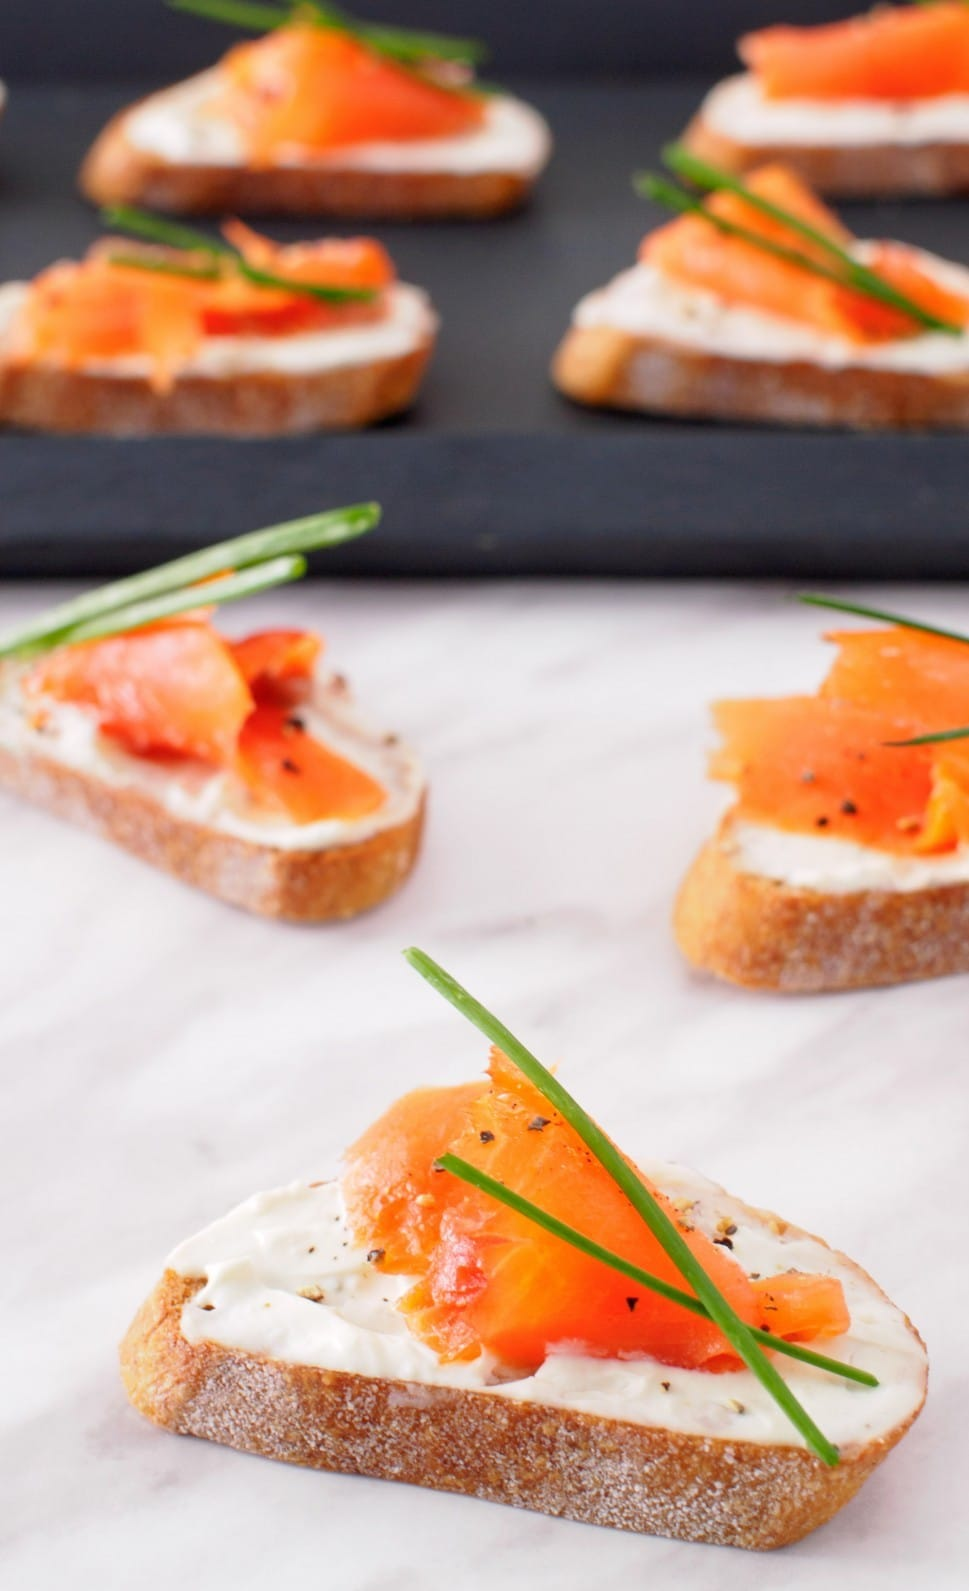 This Smoked Salmon and Boursin Crostini has only a few ingredients, can be assembled in minutes and is sure to impress your guests.